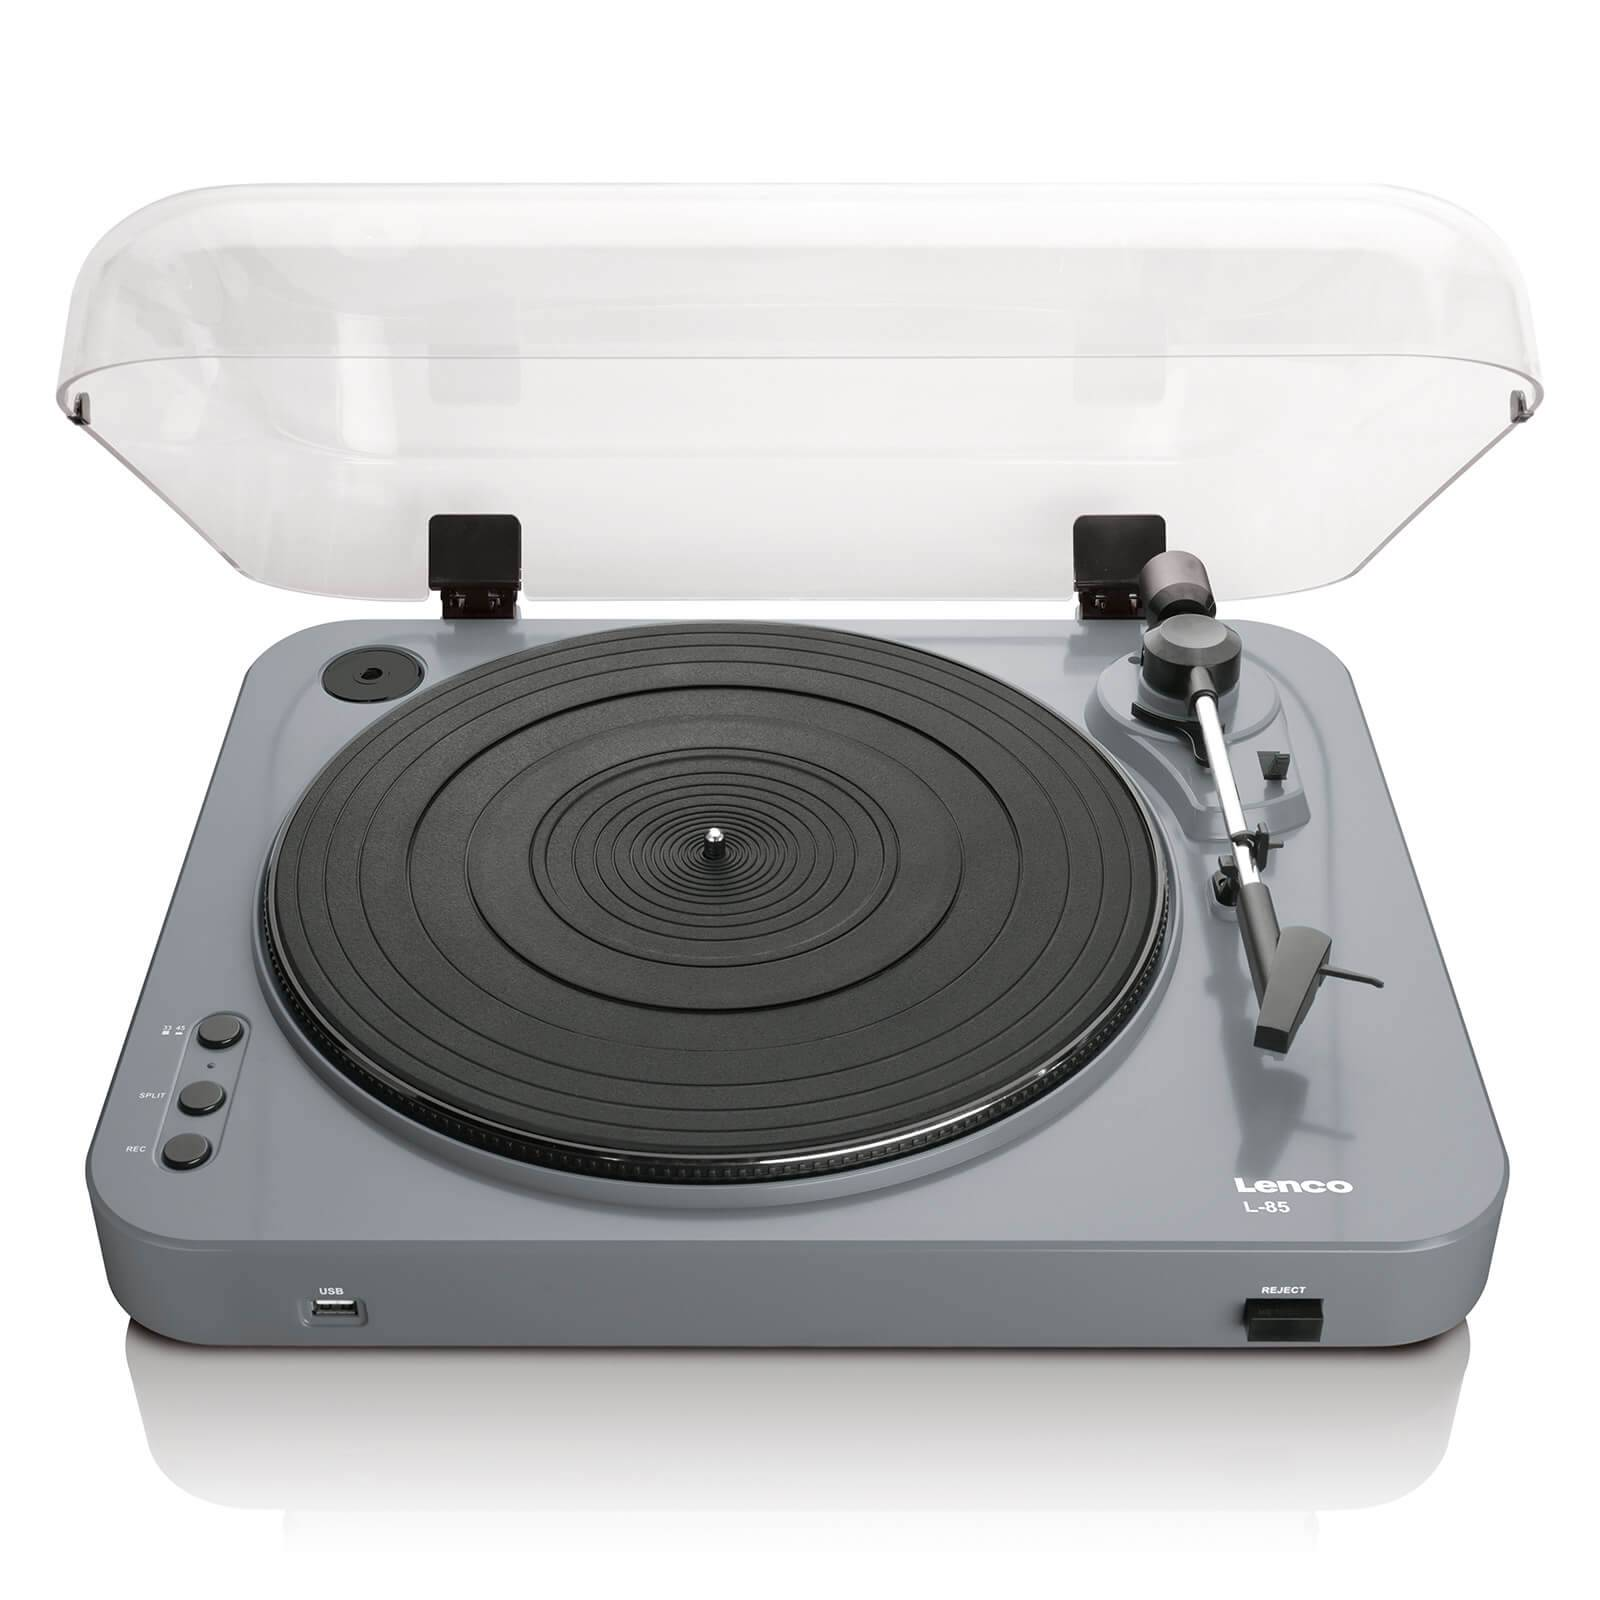 Lenco L-85 USB Turntable with Direct Recording - Grey-